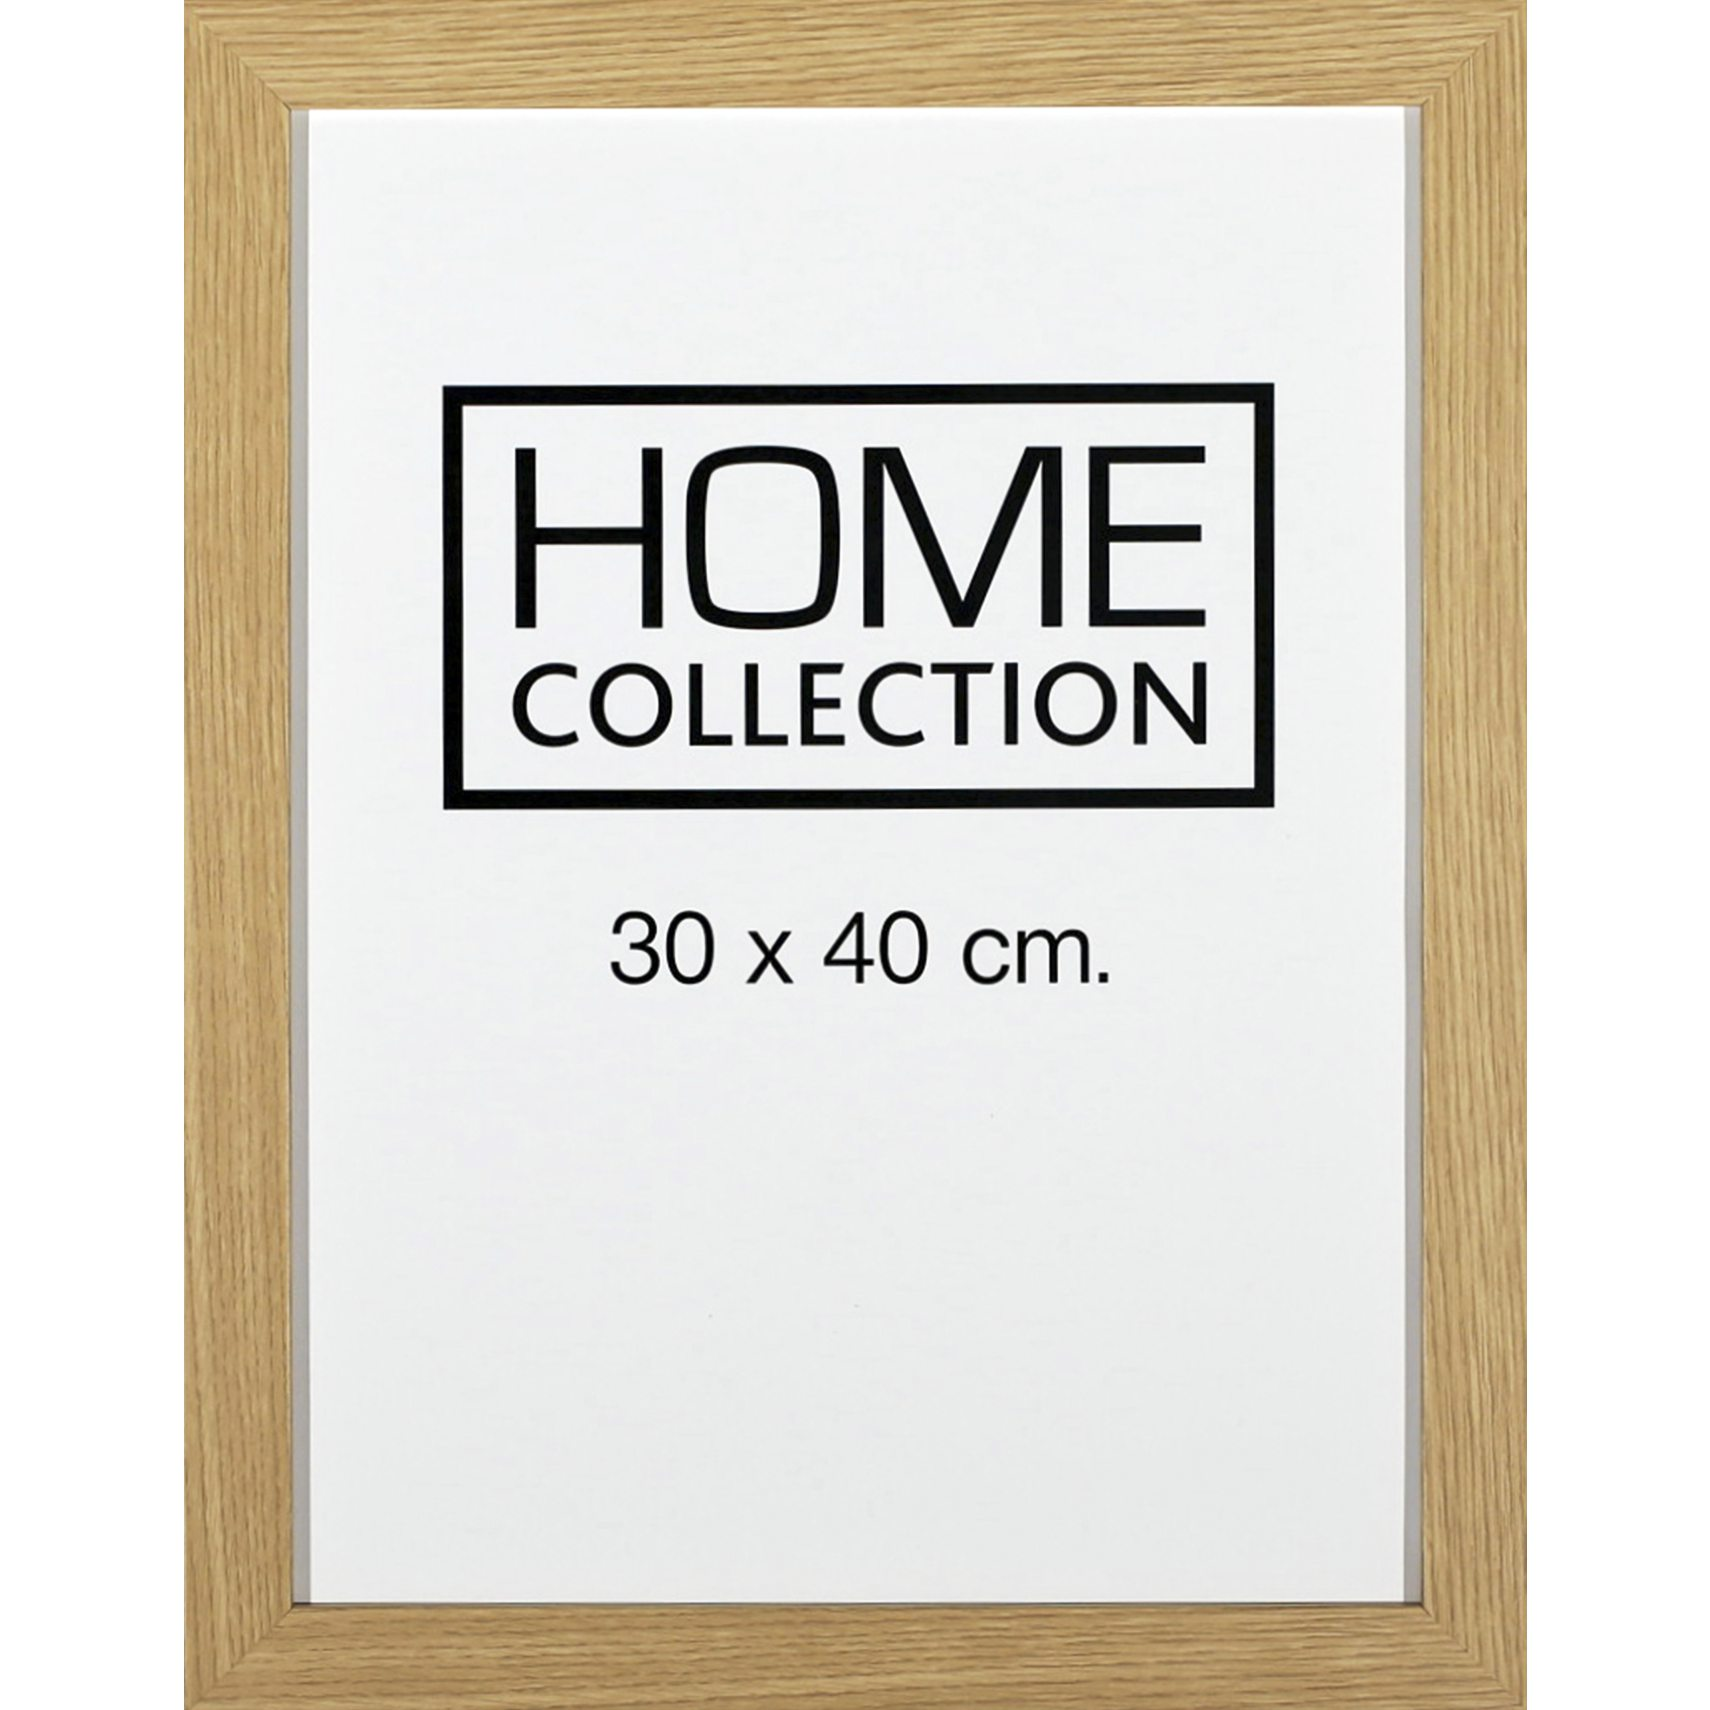 HOME COLLECTION Ram 30 x 40 x 2 cm